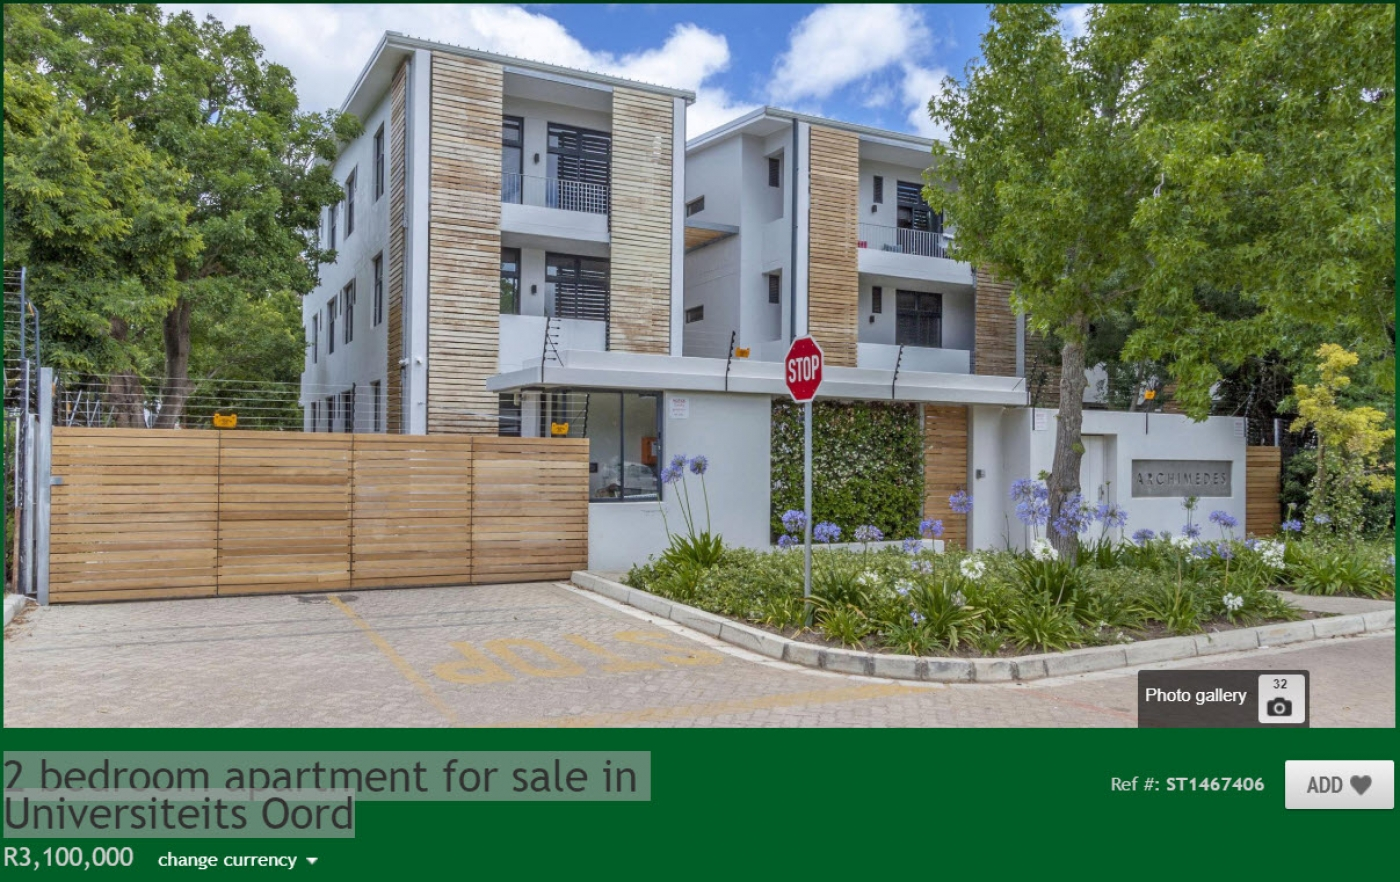 2 bedroom apartment for sale in Universiteits Oord